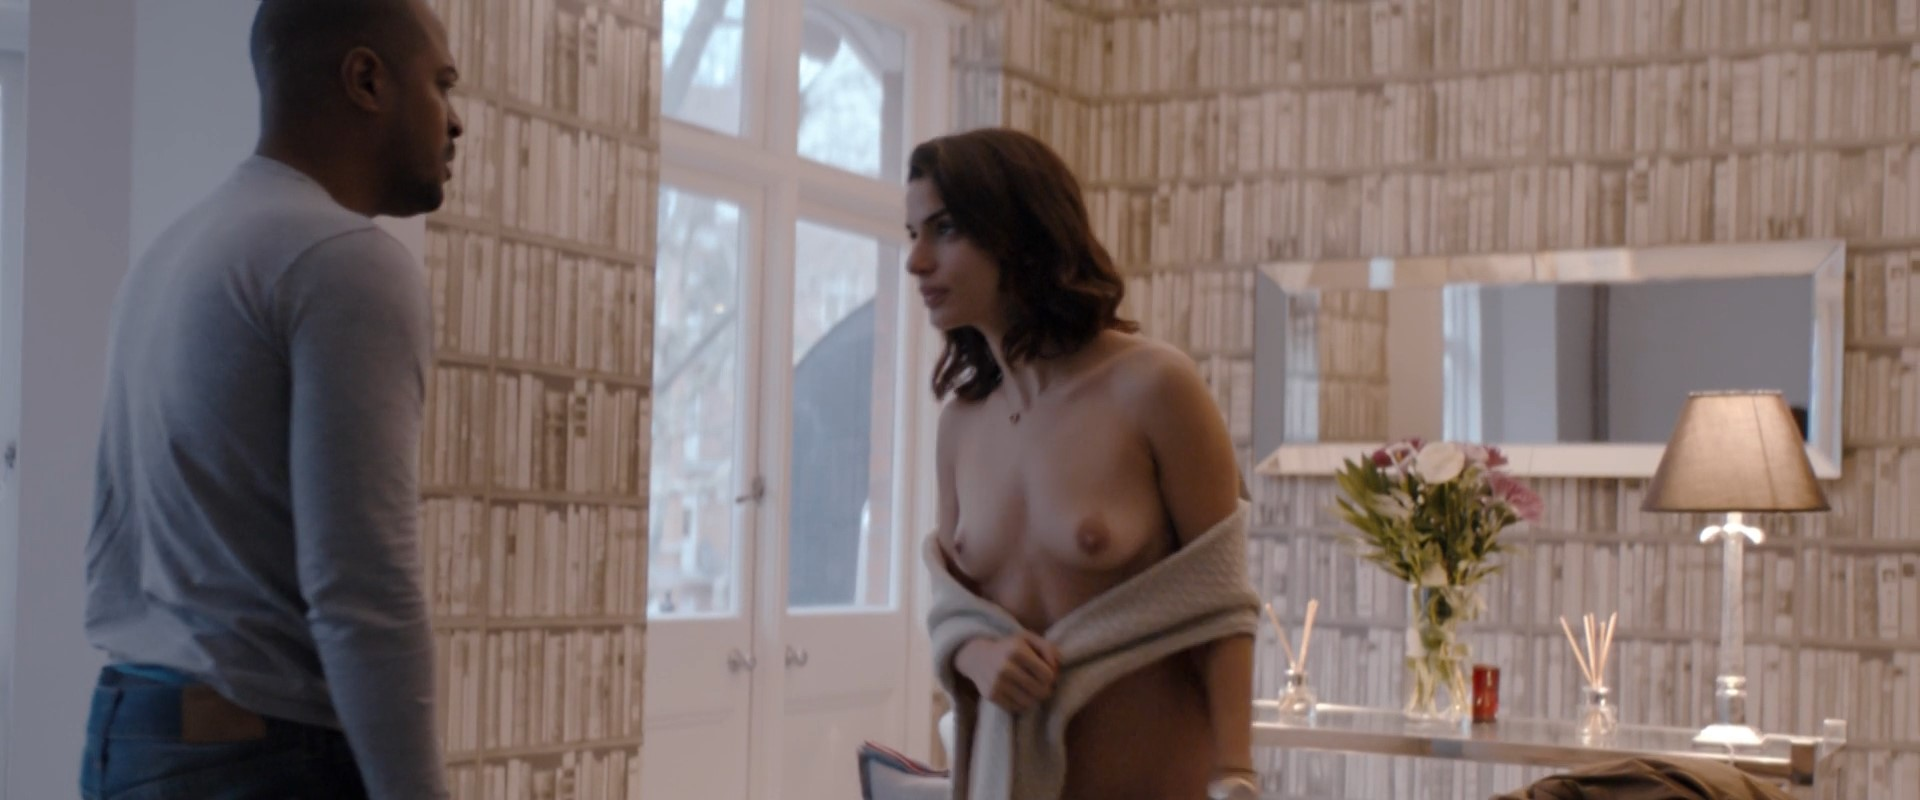 Tonia Sotiropoulou Nude Thefappening.so 6